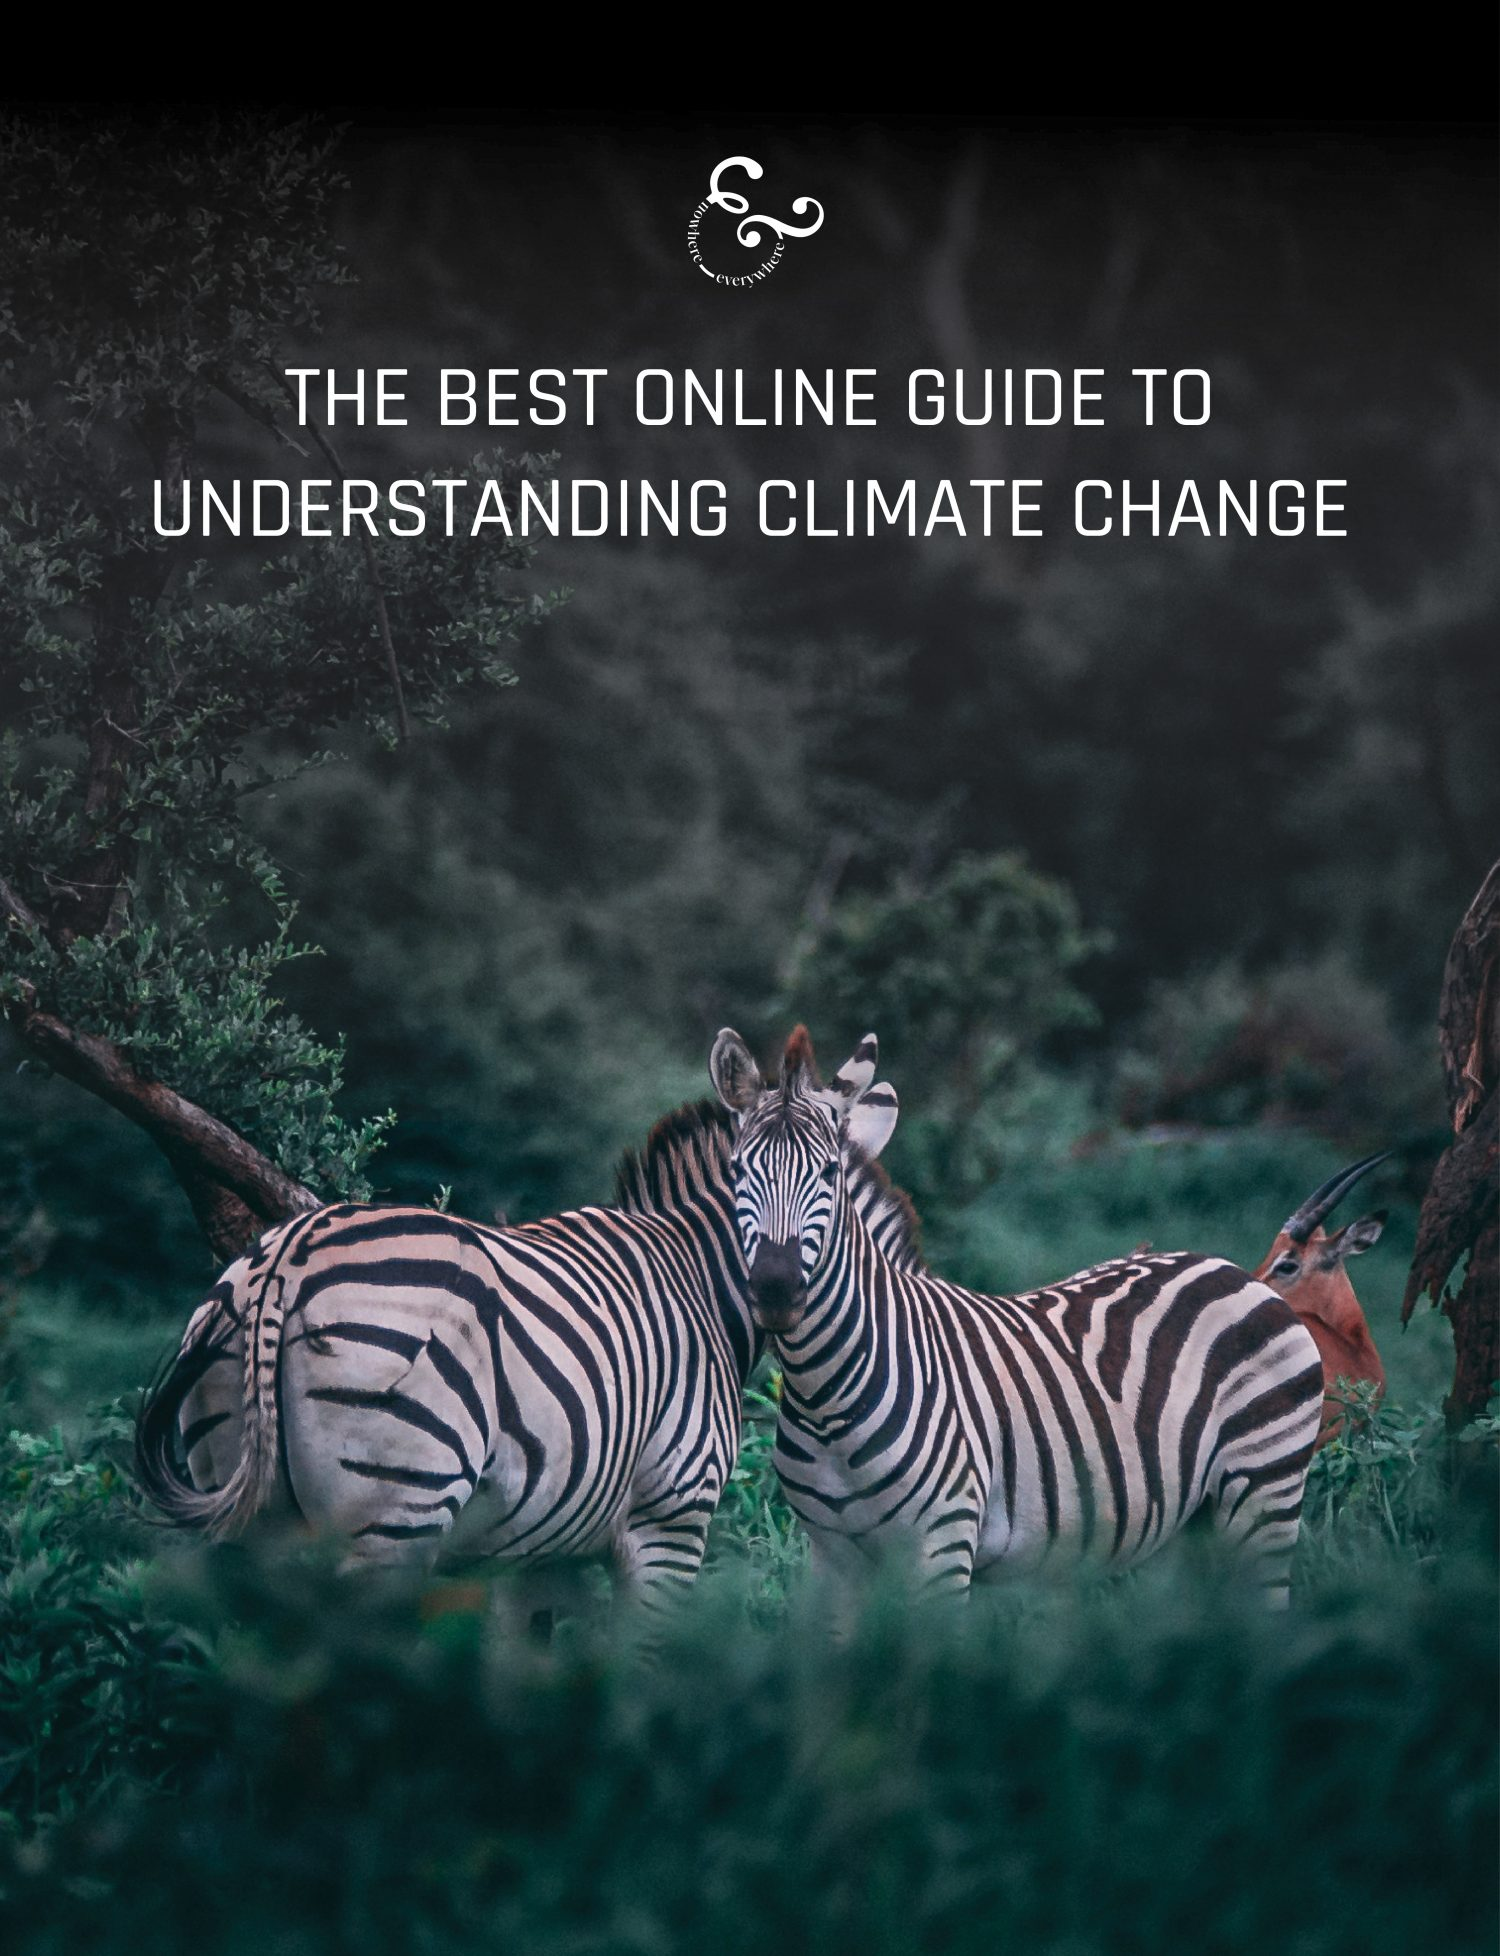 A comprehensive online guide to climate change climate crisis carbon emissions global warming - Nowhere & Everywhere - What is climate change and what can I do about it? Pandemics